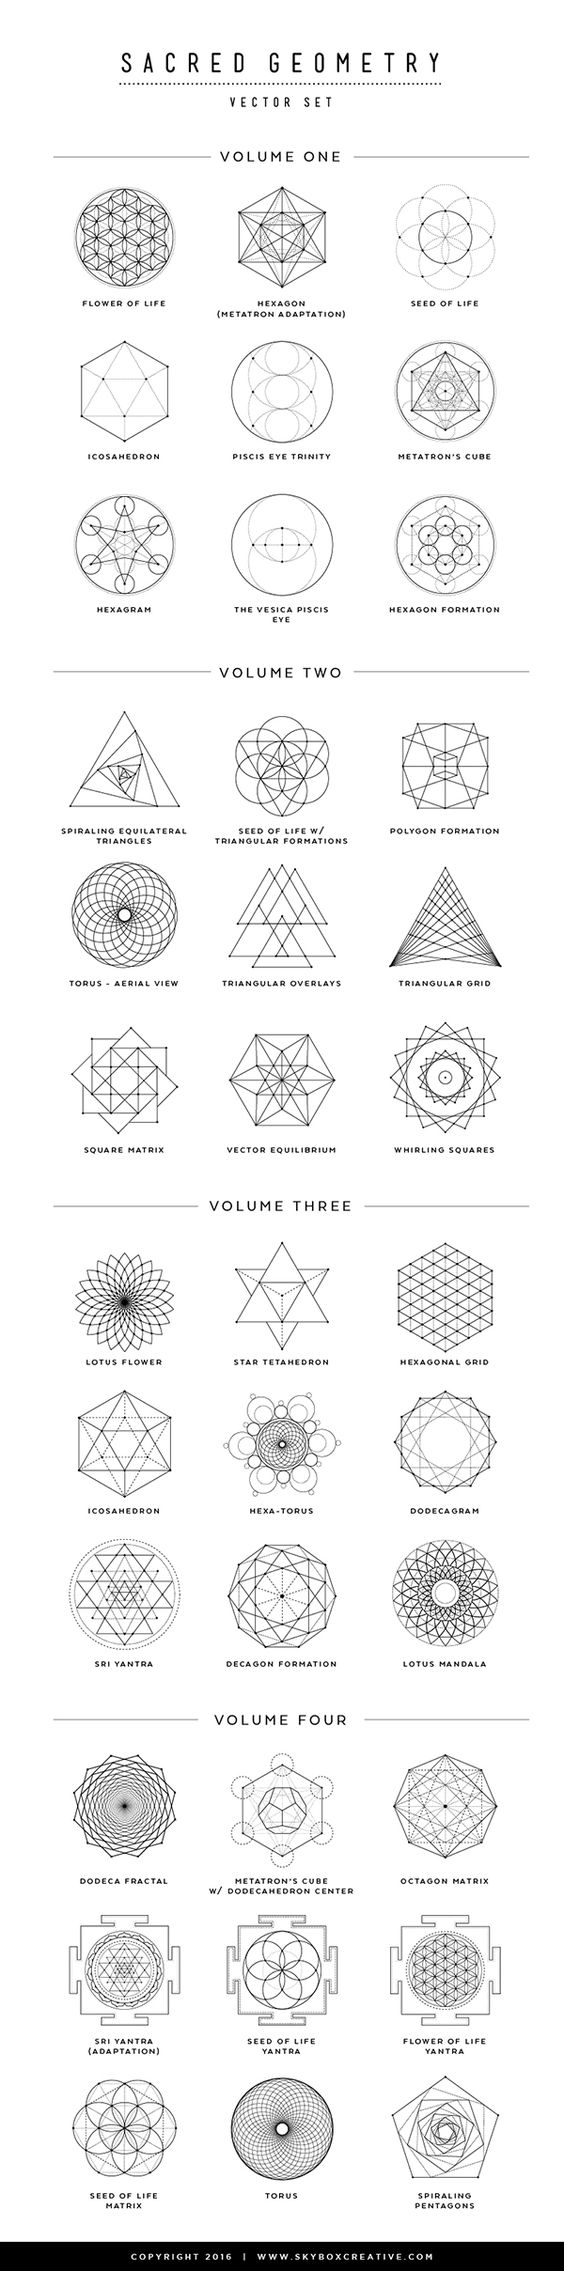 36 sacred geometry vectors and their meanings bored art. Black Bedroom Furniture Sets. Home Design Ideas